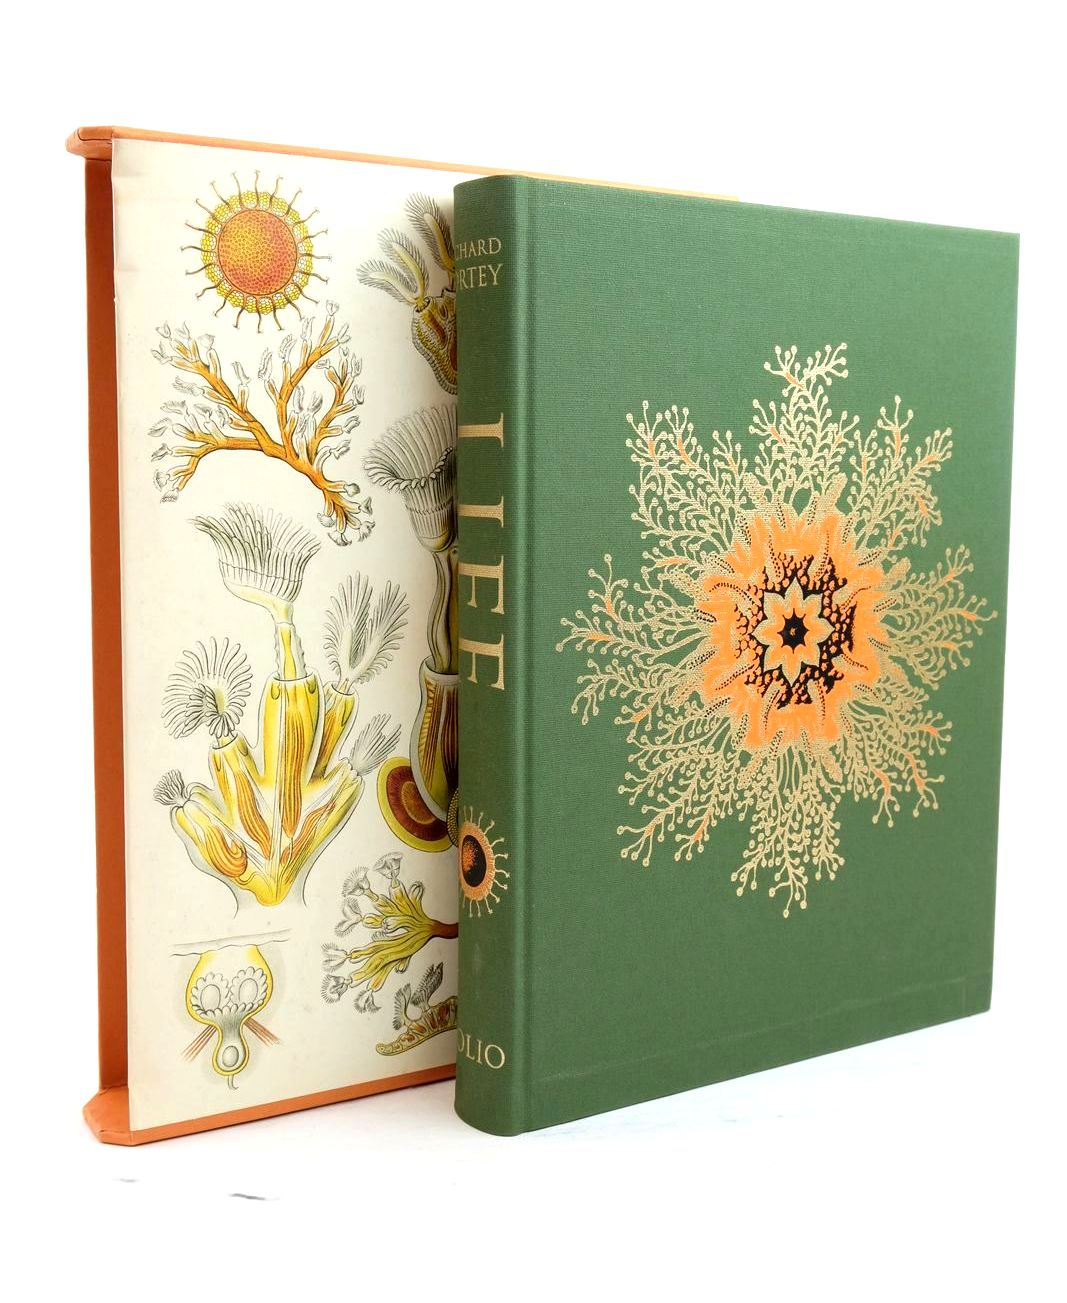 Photo of LIFE written by Fortey, Richard published by Folio Society (STOCK CODE: 1321064)  for sale by Stella & Rose's Books